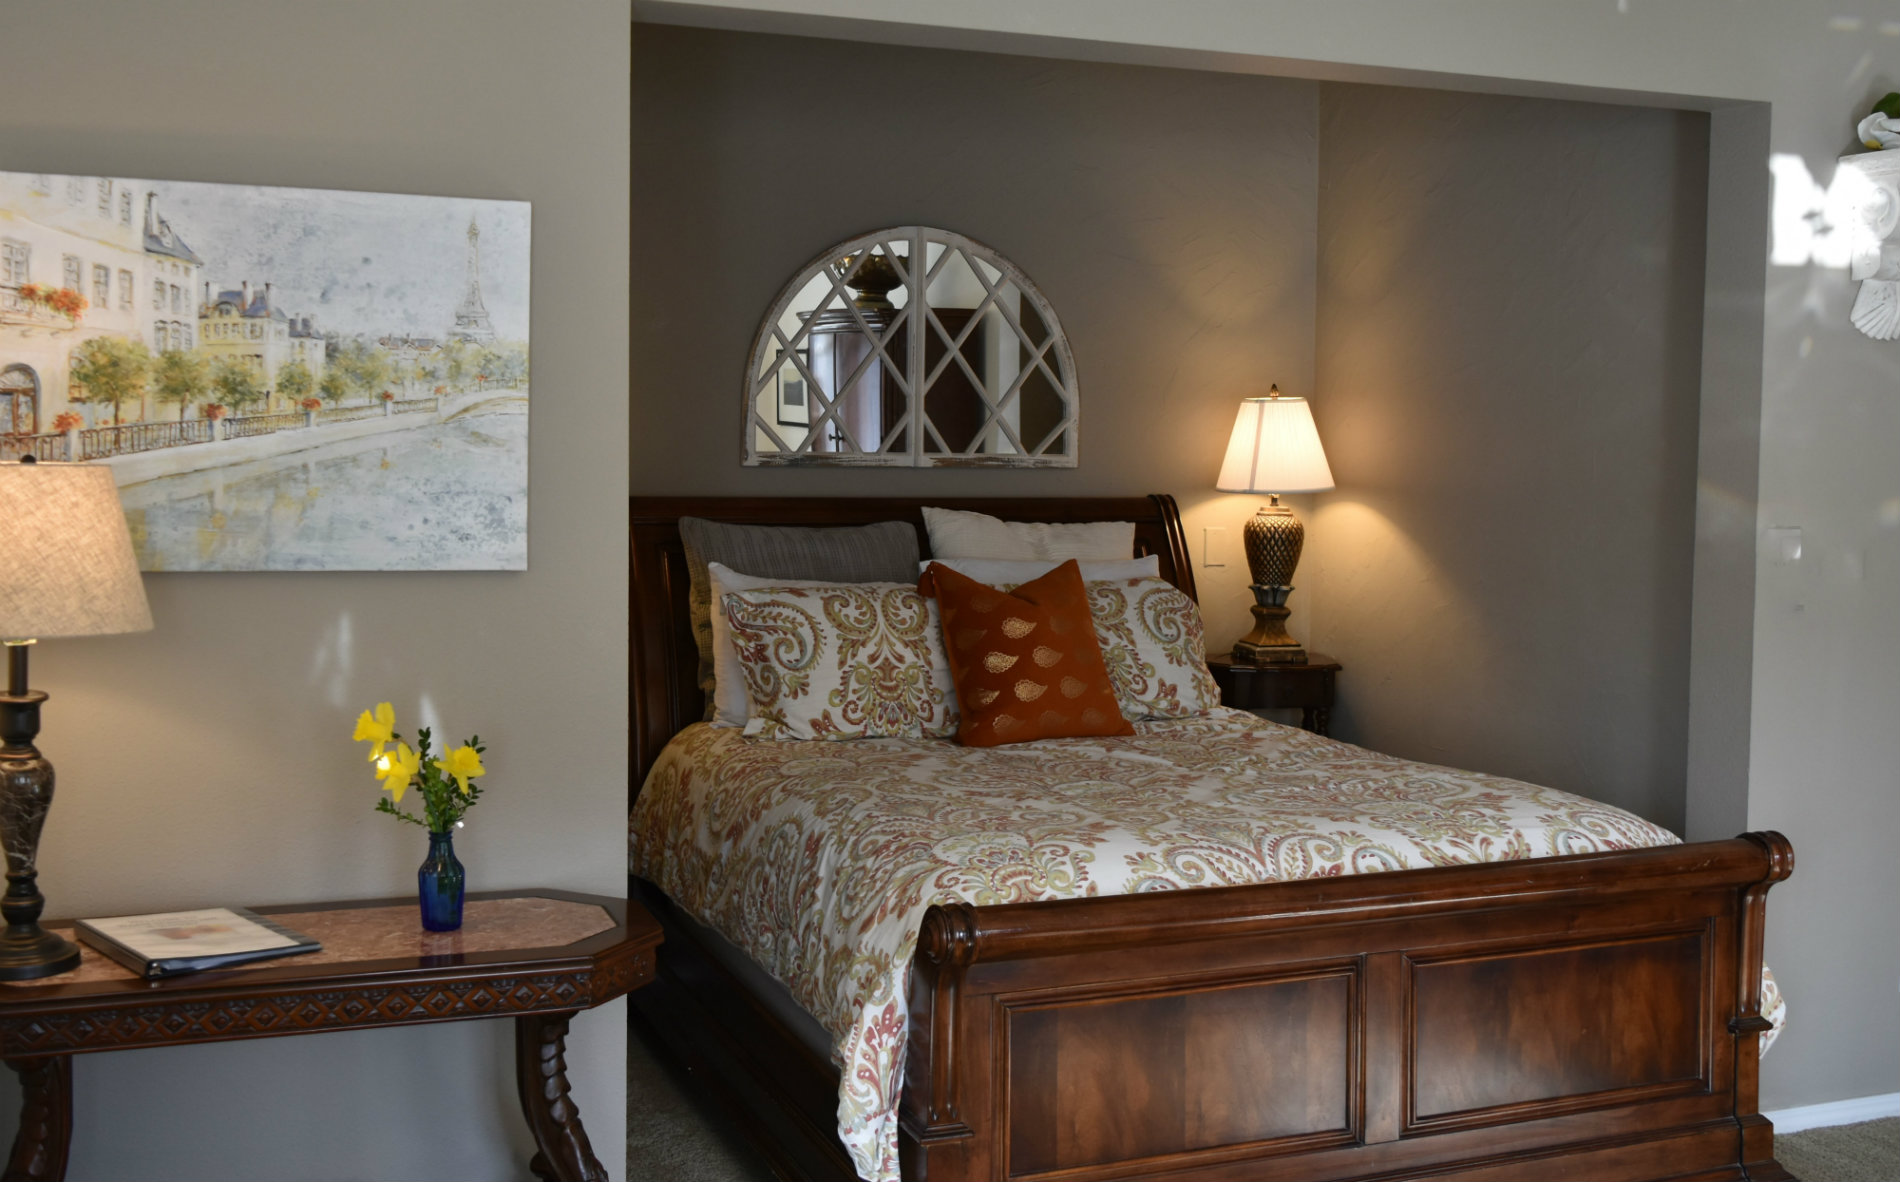 room is well-lit with deep red color and cream accents and is adjacent to the cherry orchards outside